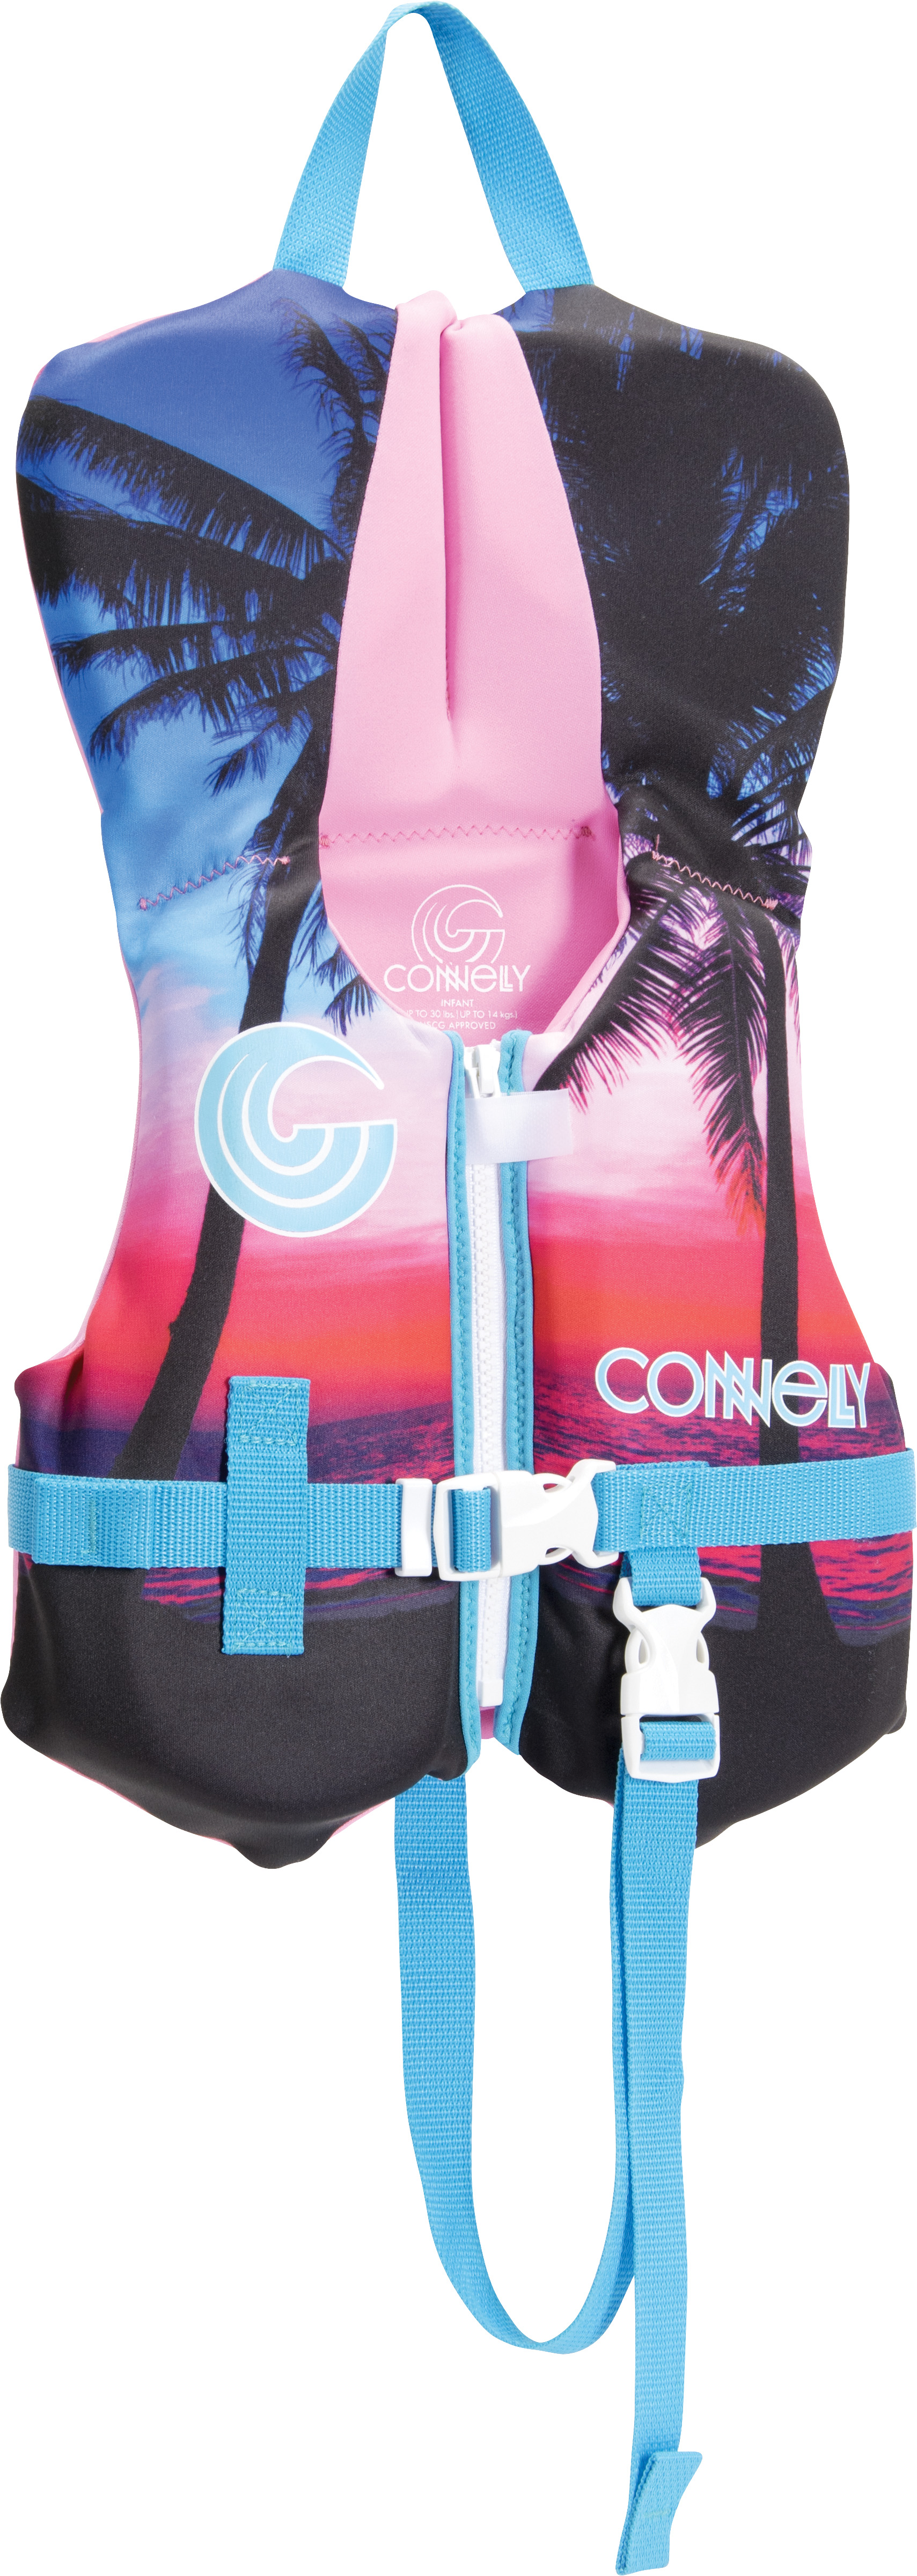 GIRL'S CLASSIC NEO LIFE VEST - INFANT 0-14KG CONNELLY 2018